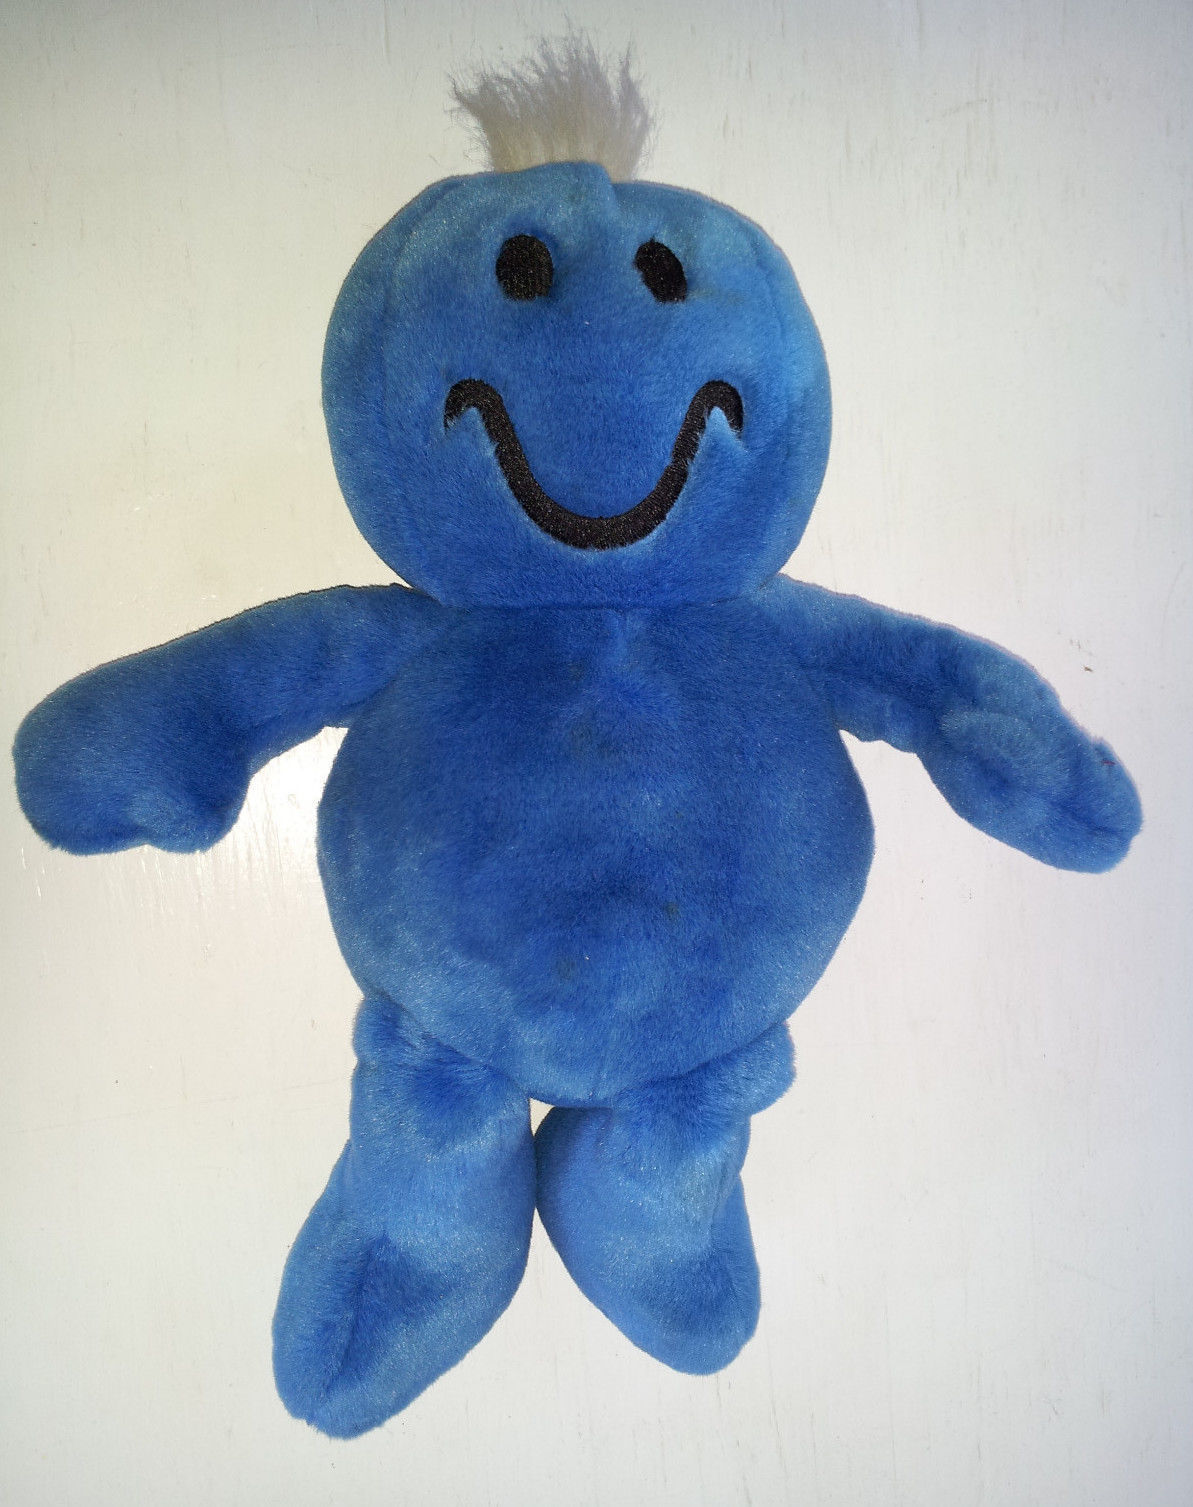 Dan Dee Laughing Smiley Face Plush Man Blue Stuffed Animal ... - photo#43